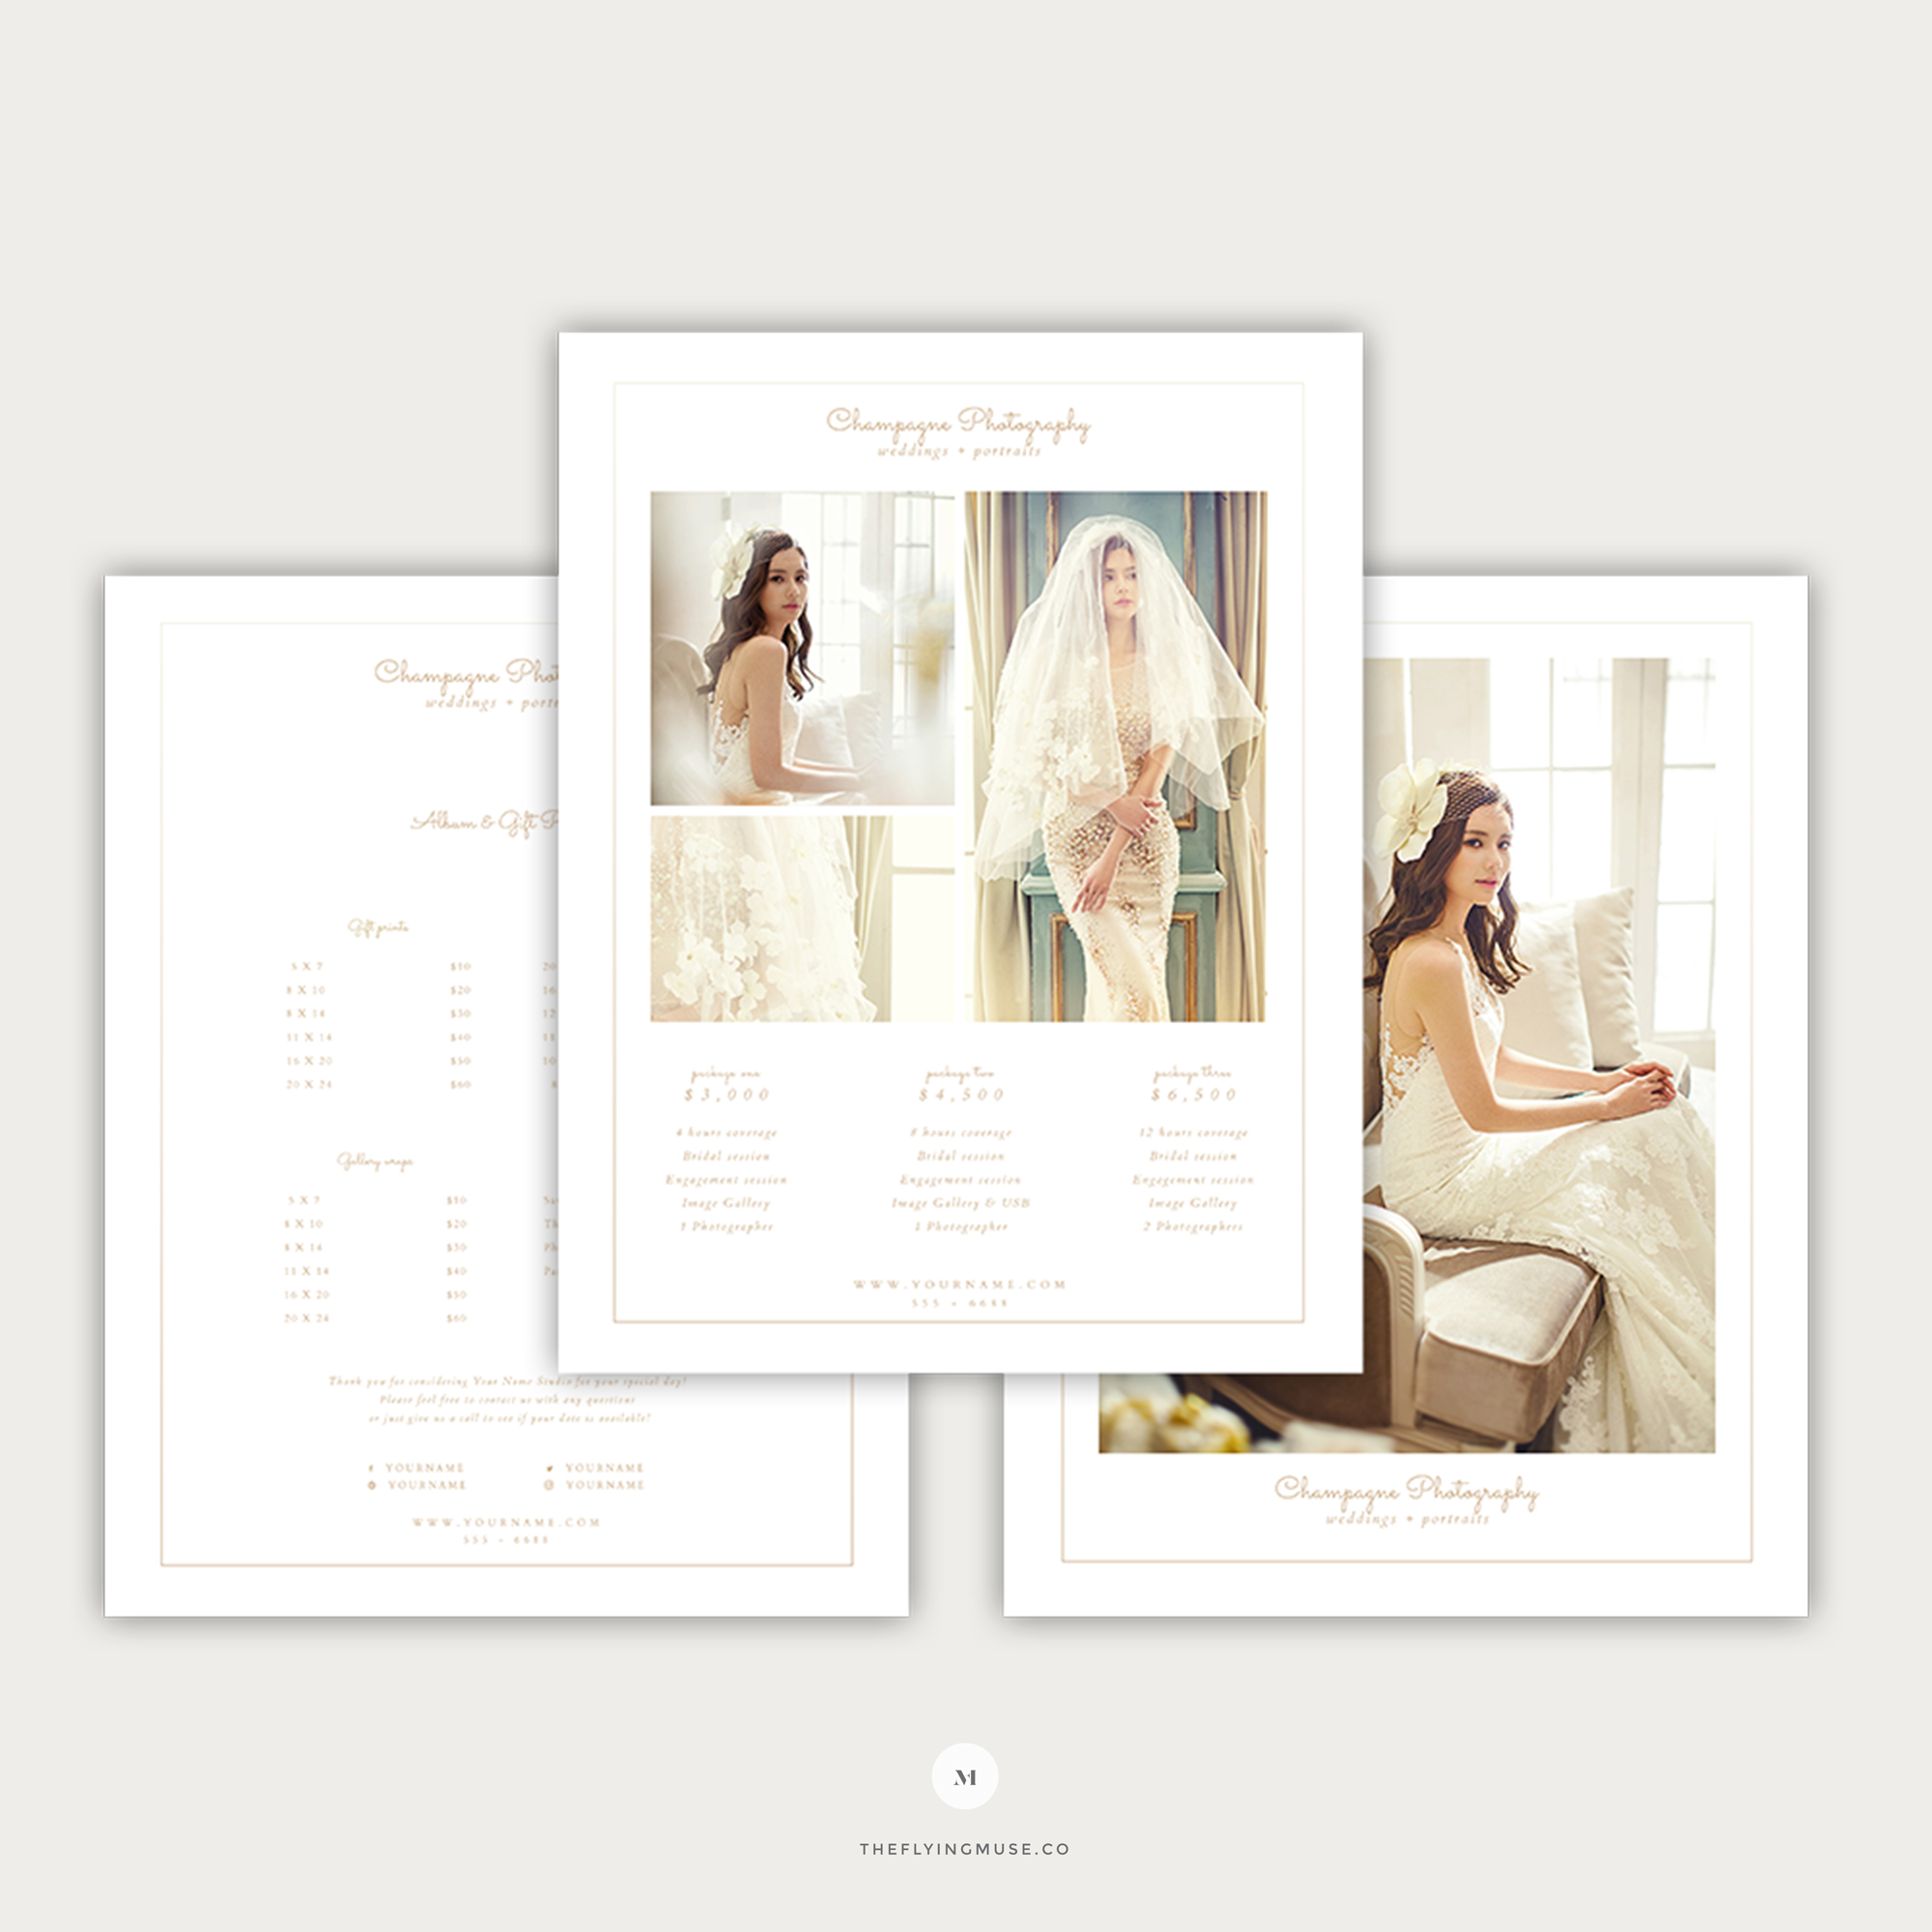 minimal wedding photography pricing guide template champagne collection the flying muse. Black Bedroom Furniture Sets. Home Design Ideas